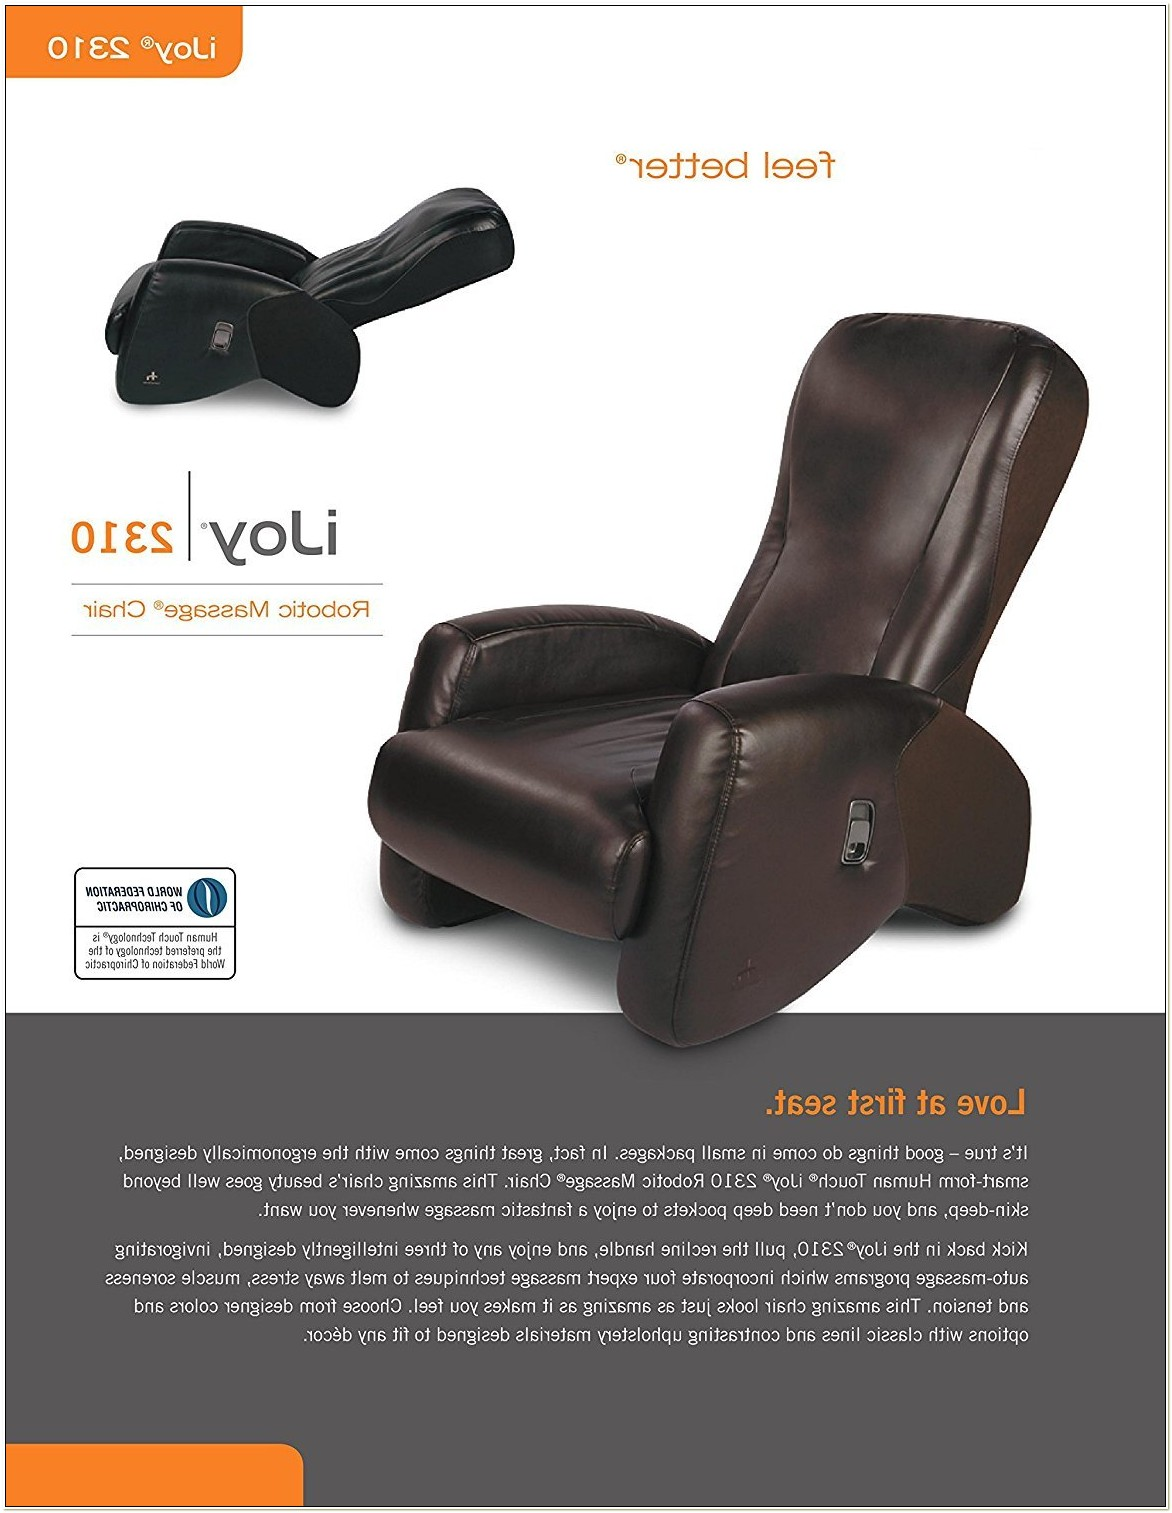 Ijoy 2310 Robotic Massage Chair